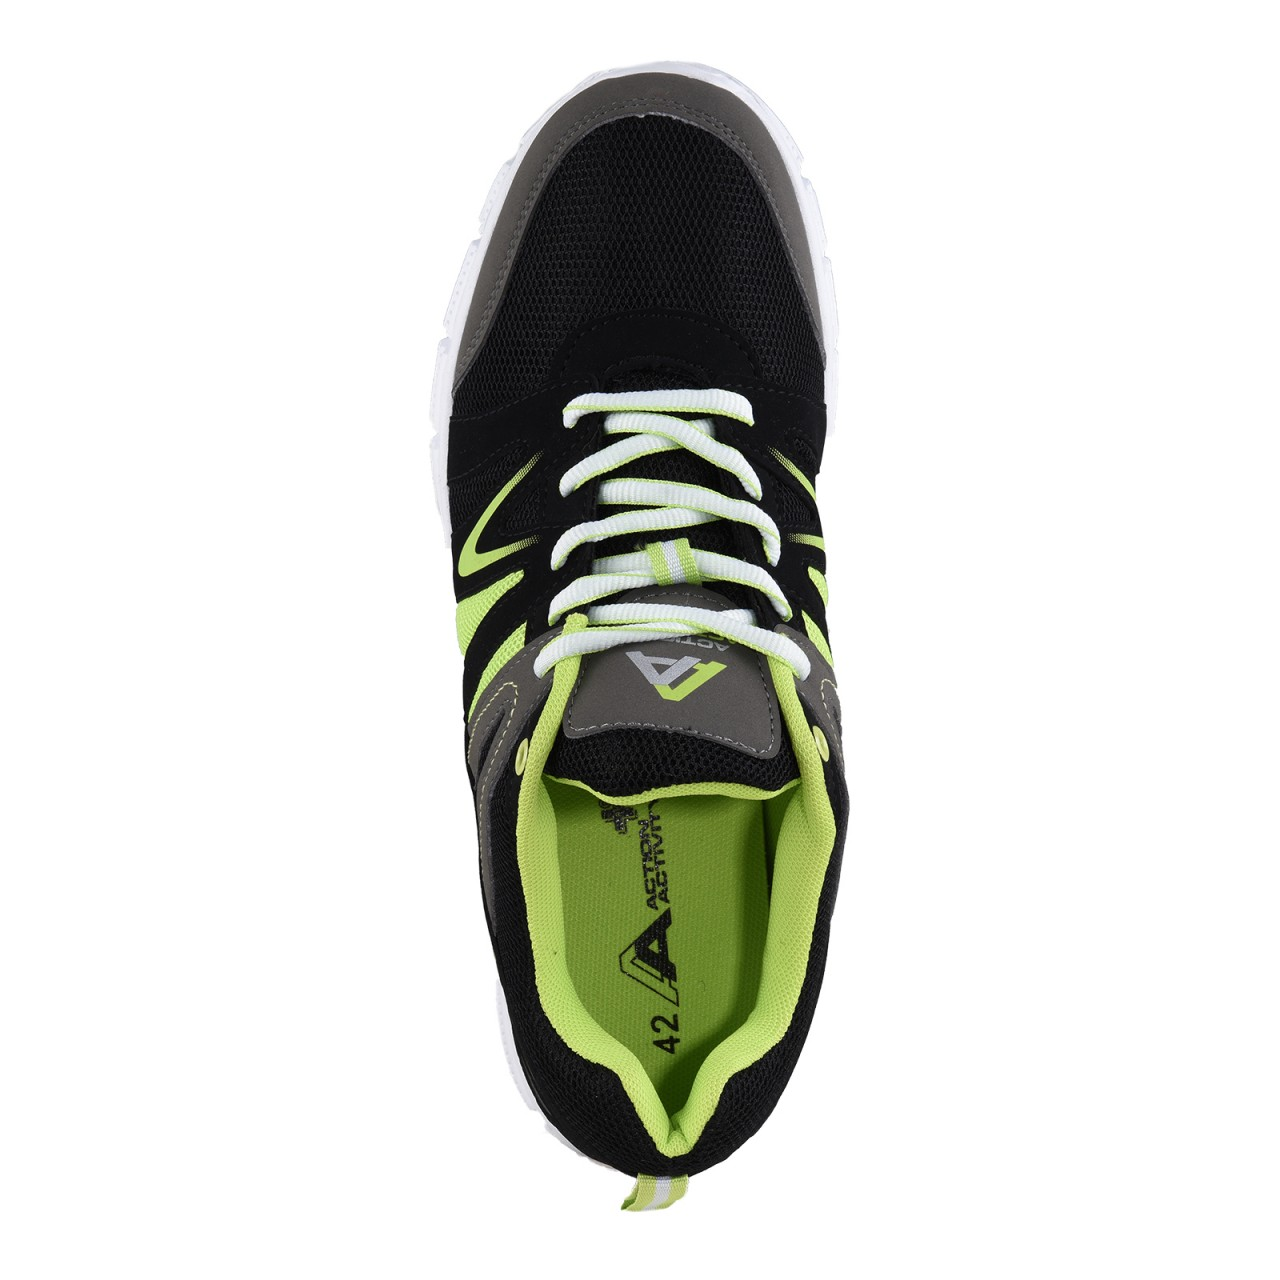 Multi Activity Shoe Men Reviews 19